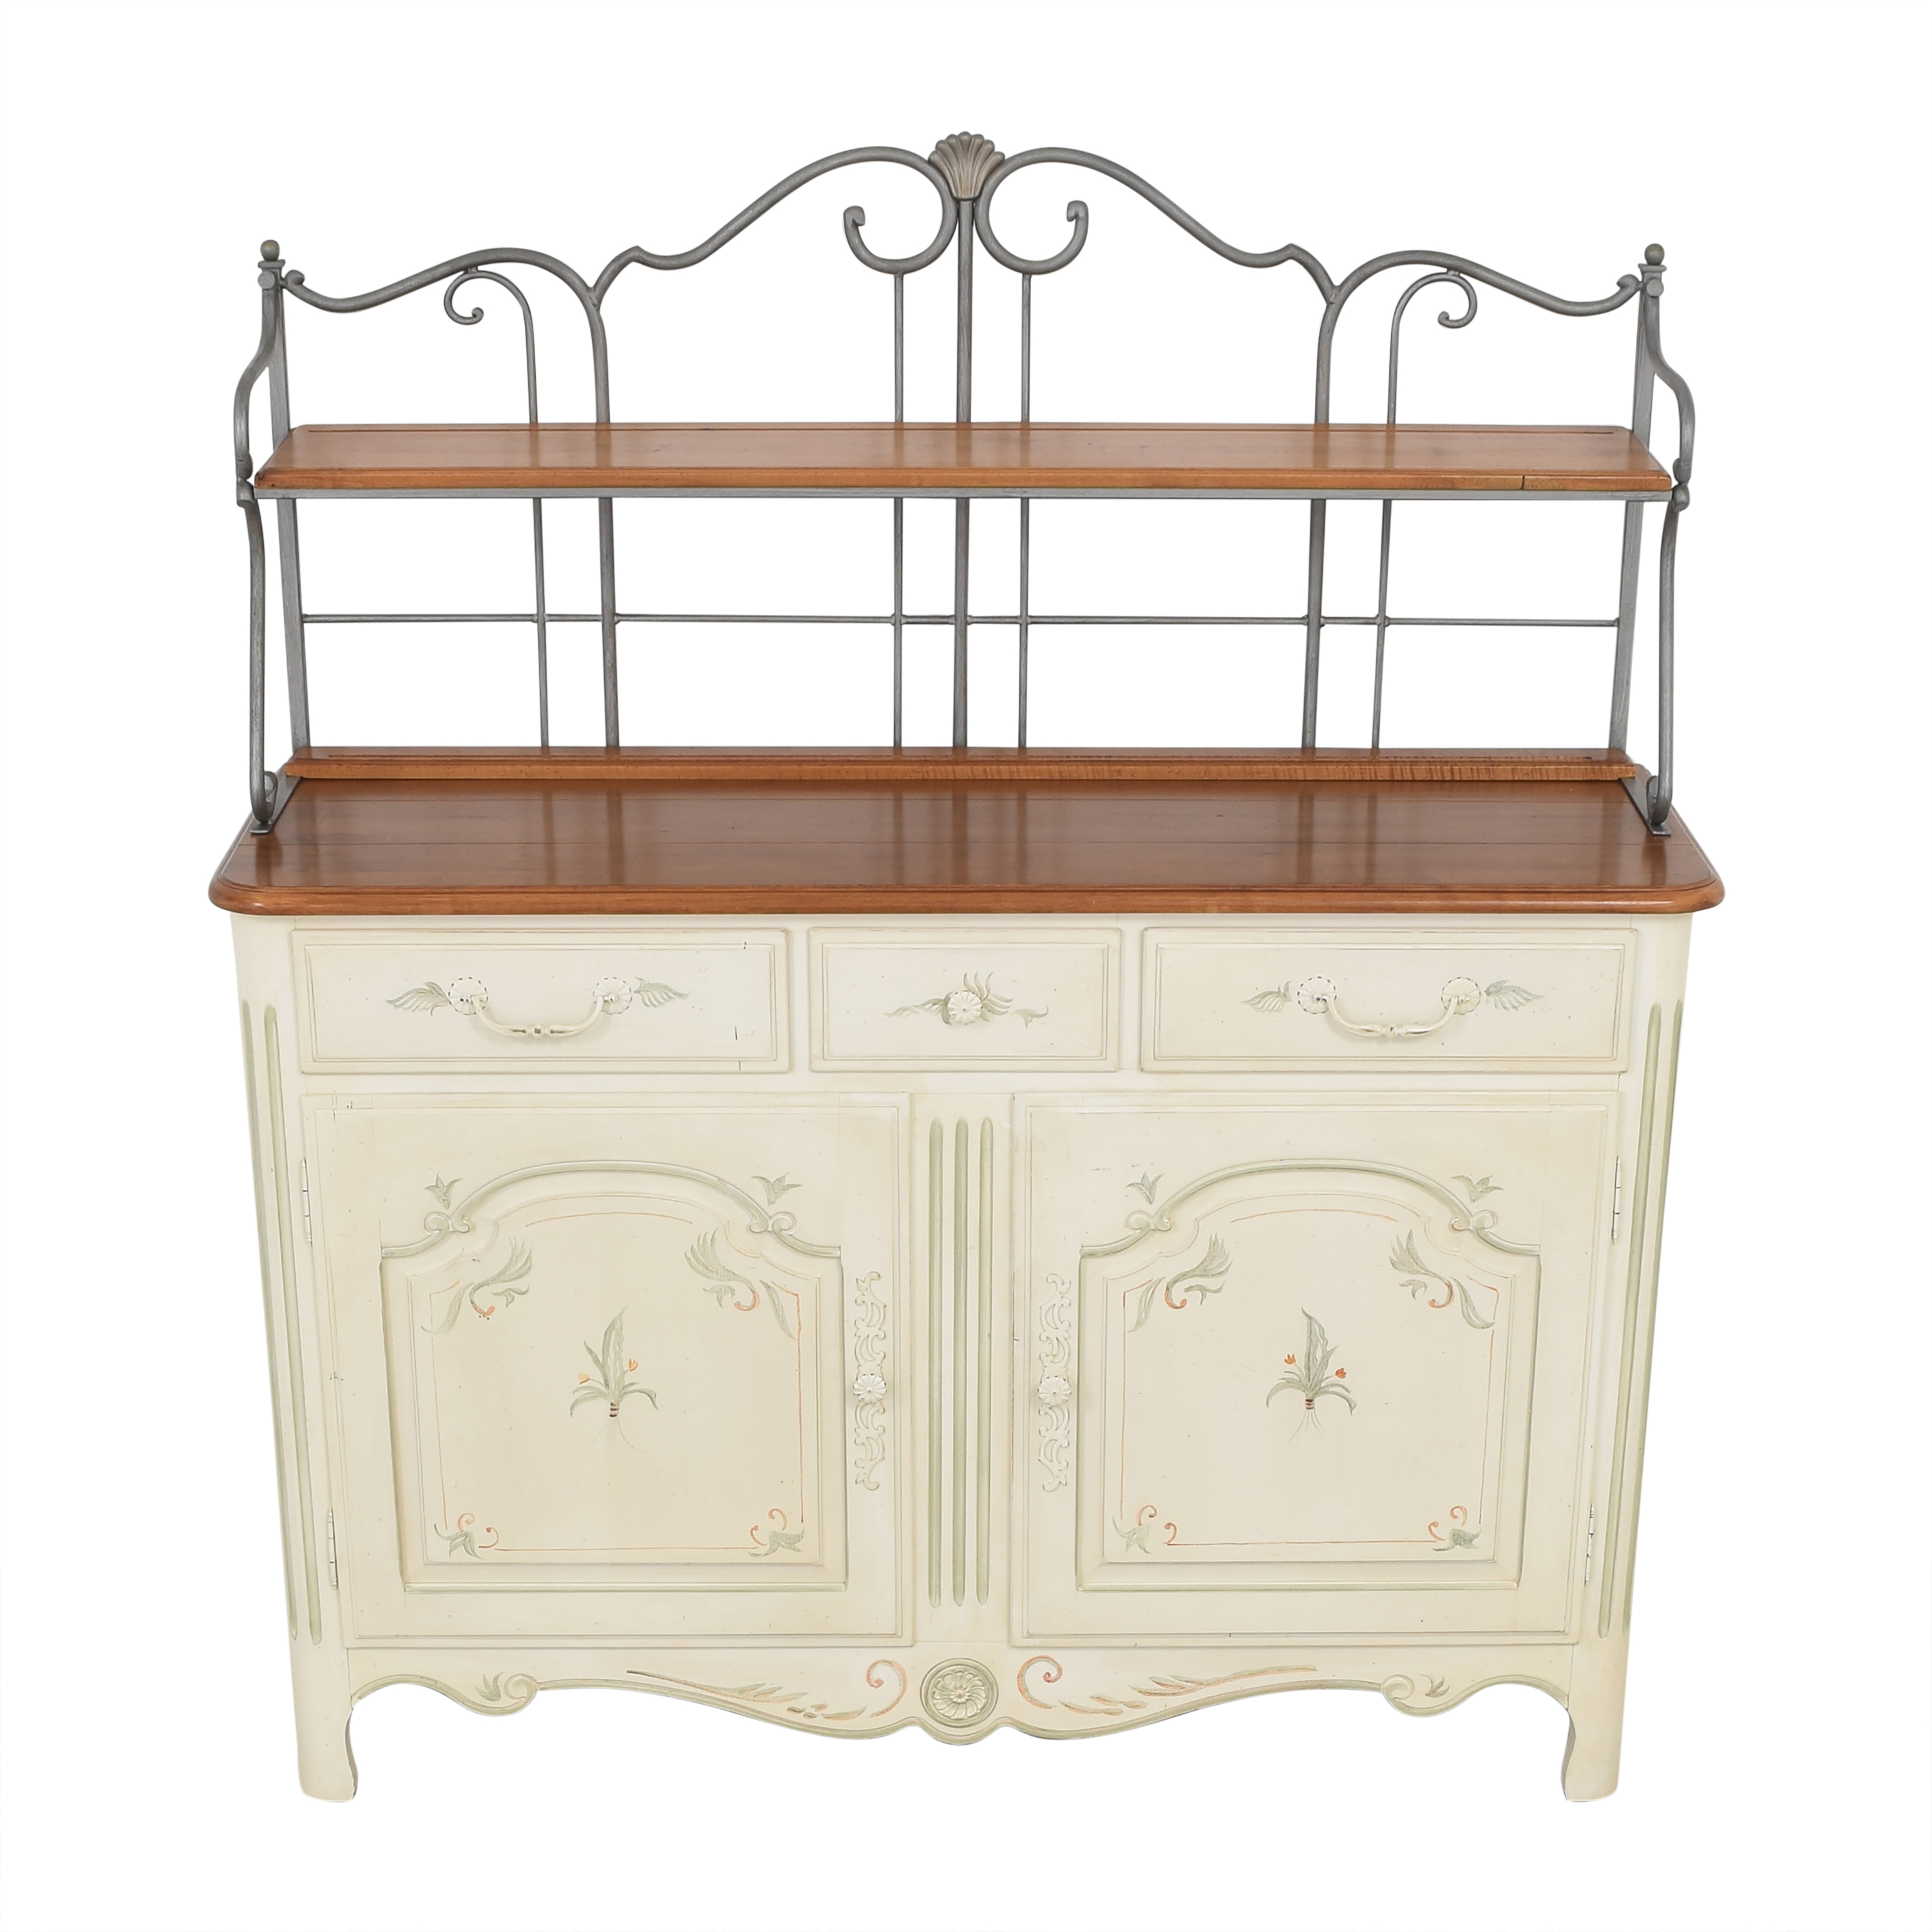 Ethan Allen Ethan Allen French Country Sideboard Baker's Rack used